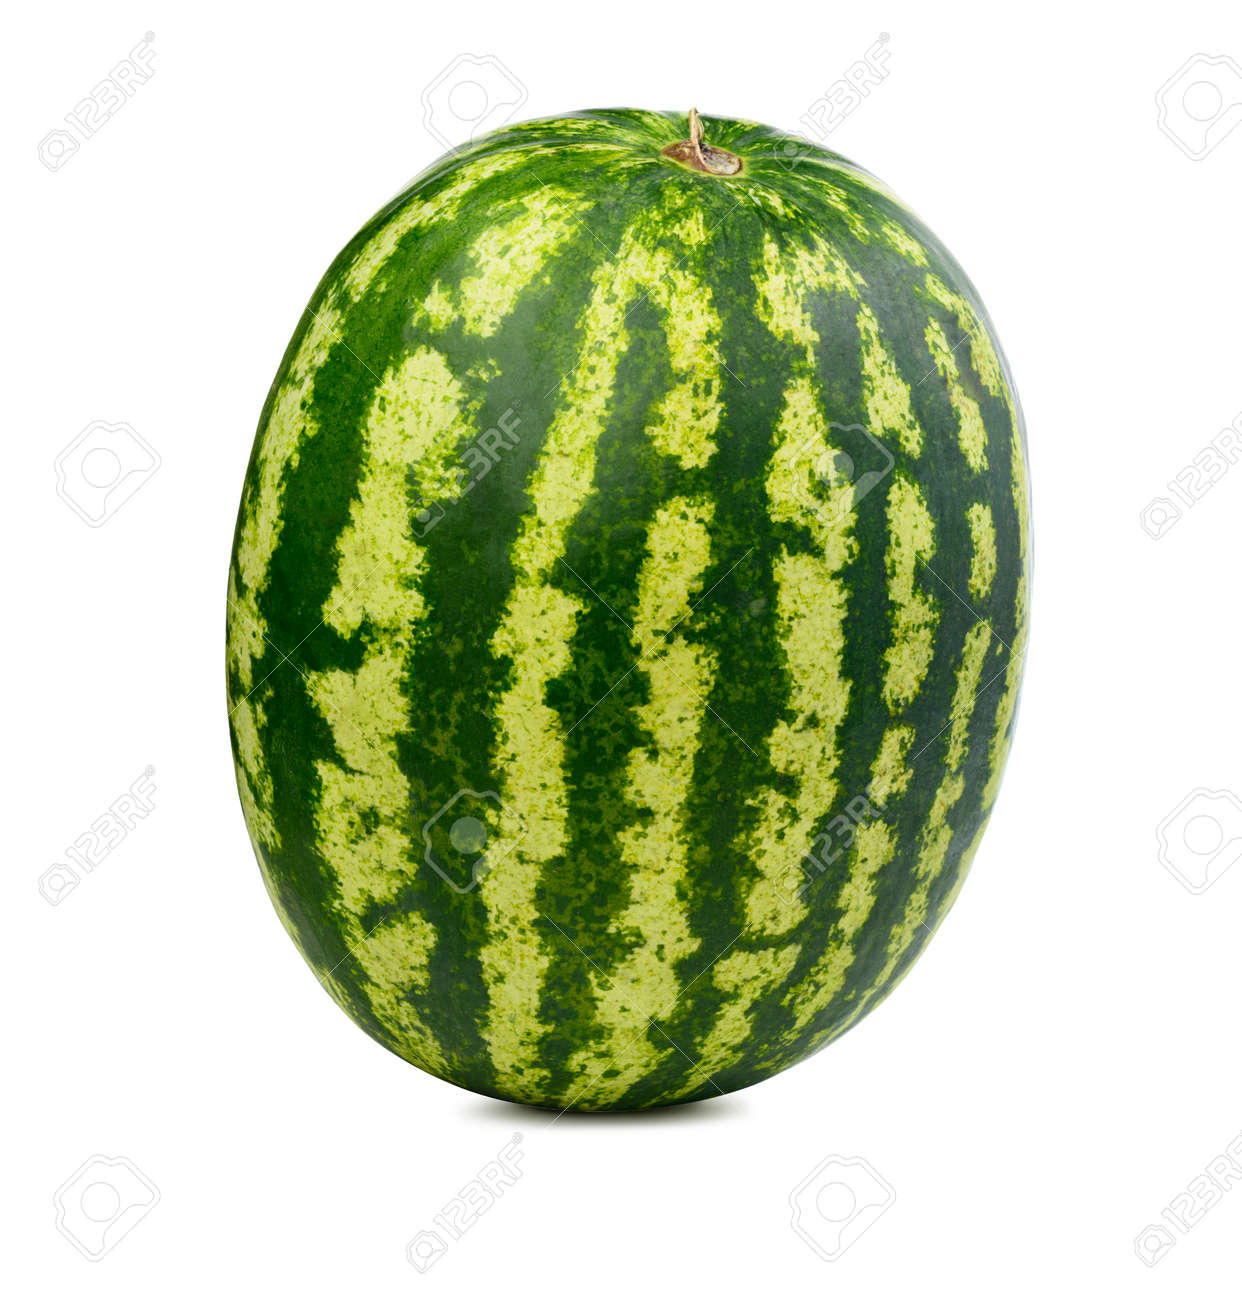 Fresh watermelon isolated. Organic water melon slice on white background. - 155940259